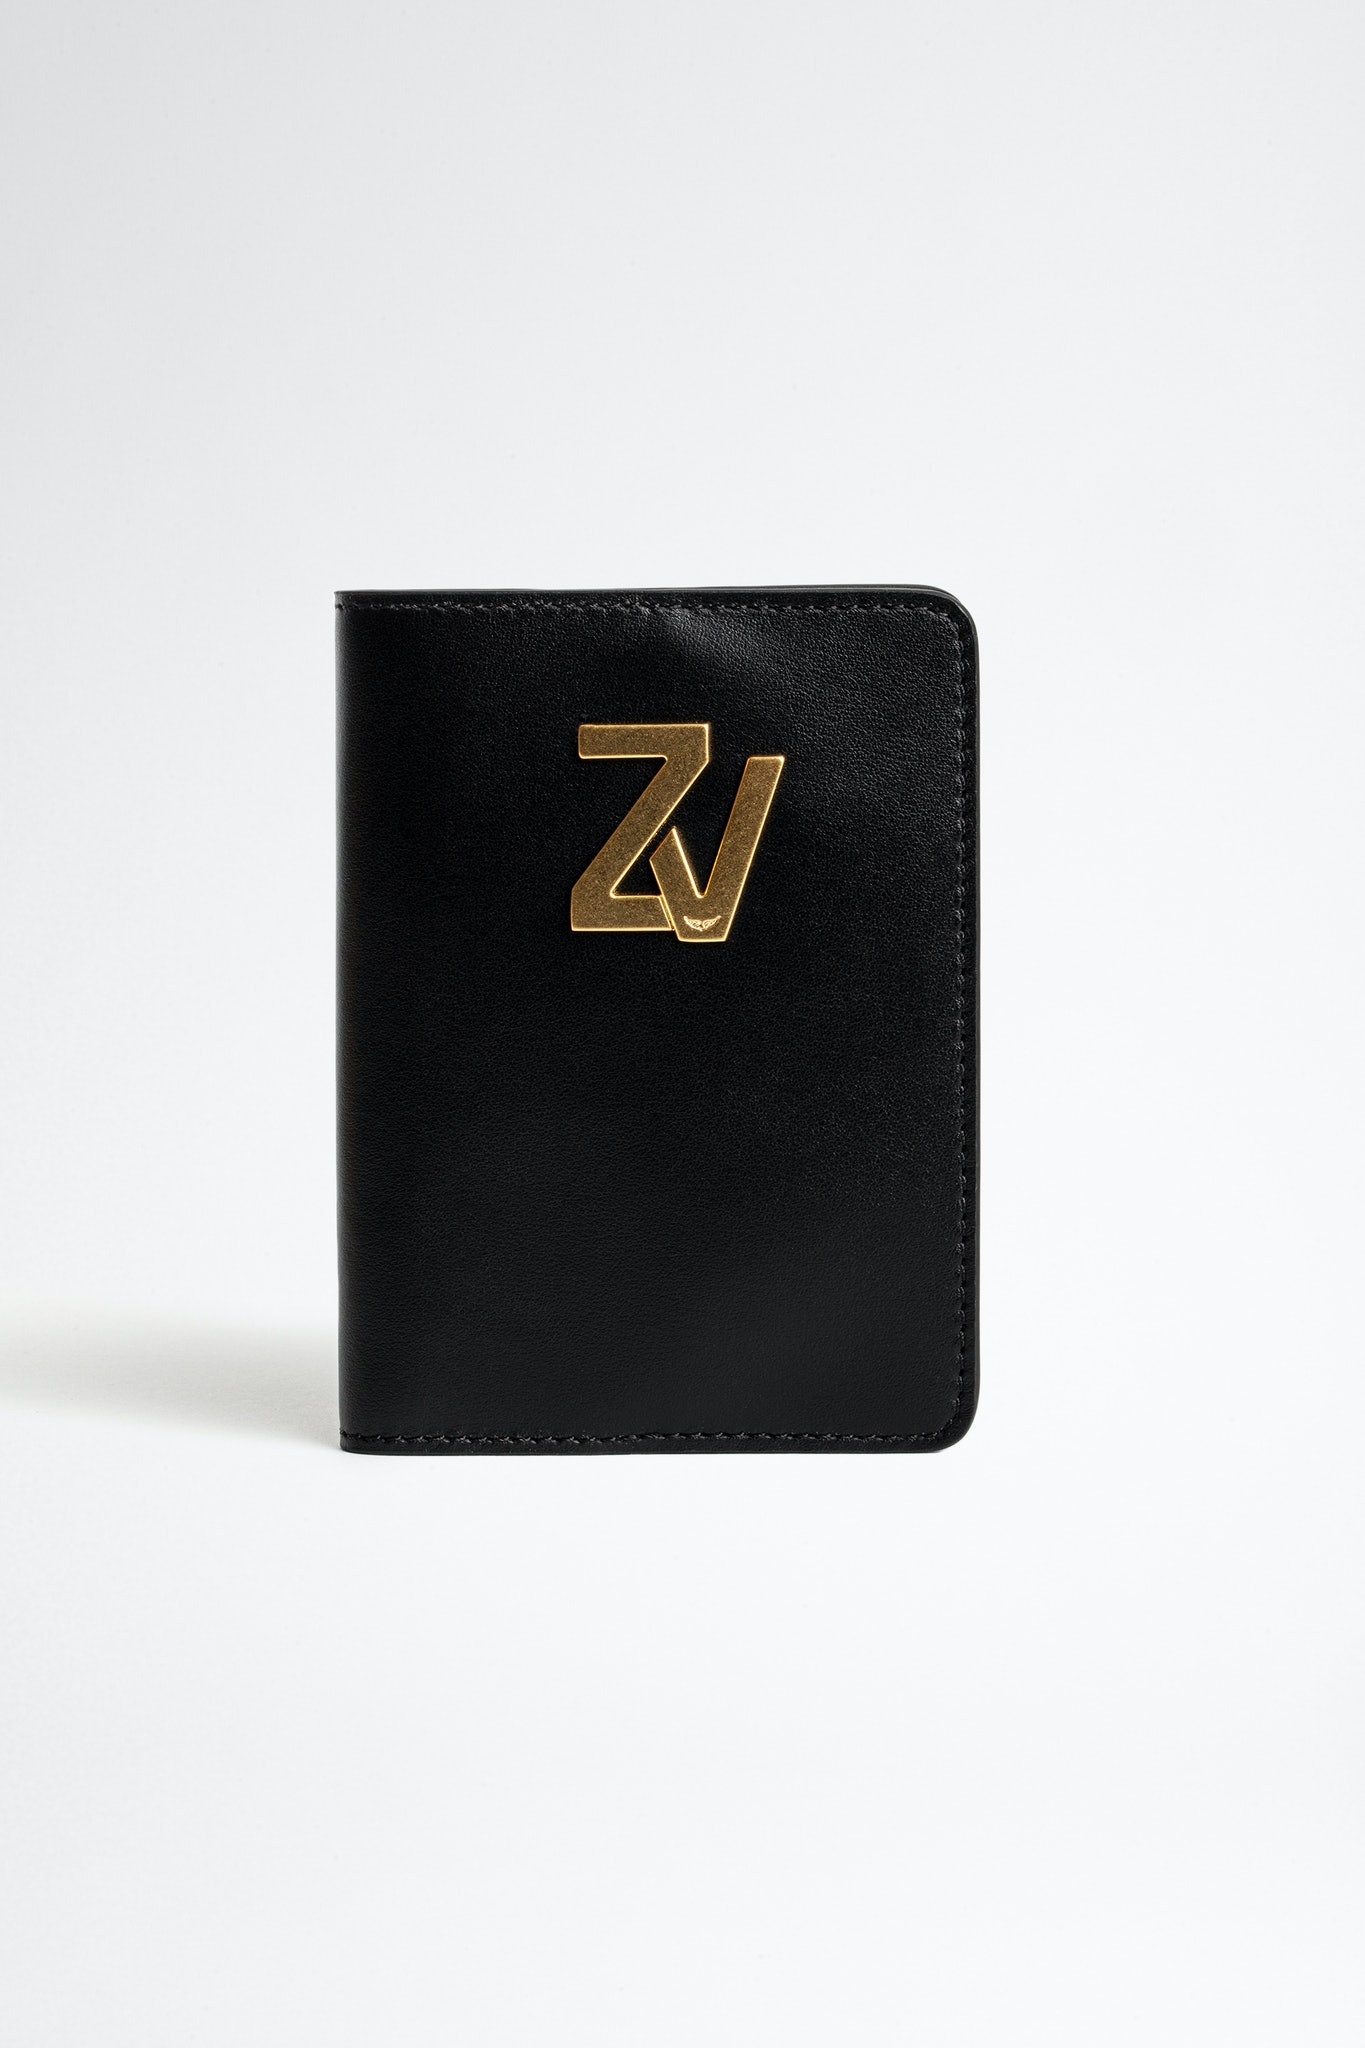 ZV Initiale Le Travel passport holder